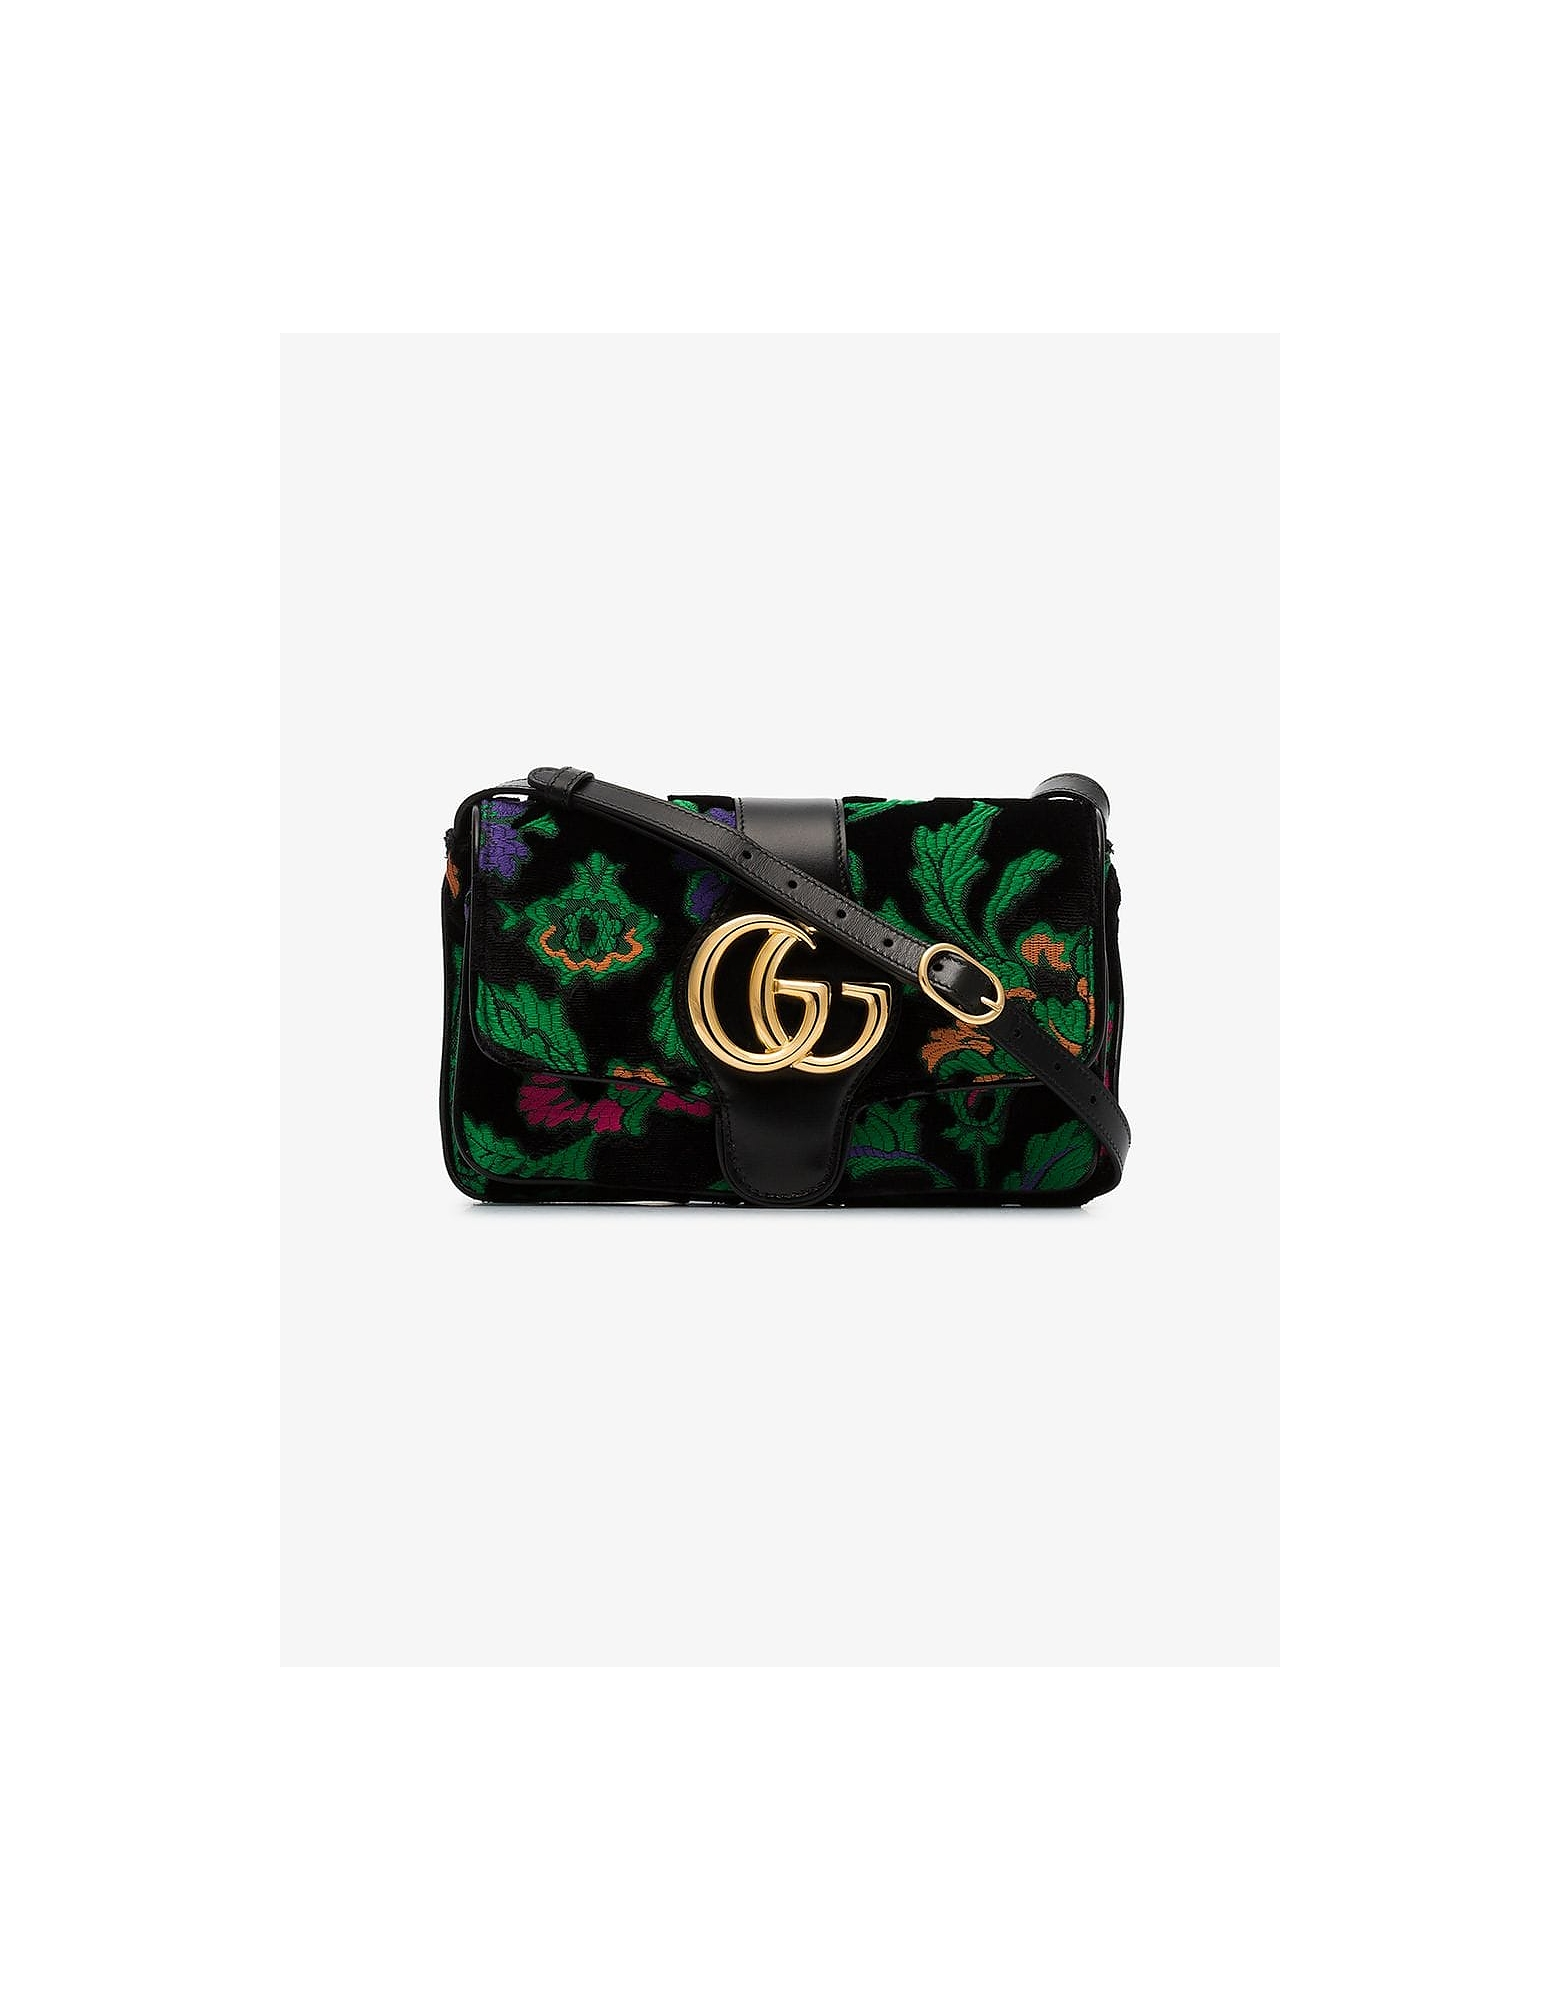 Gucci Designer Handbags, Arli Small Floral Shoulder Bag